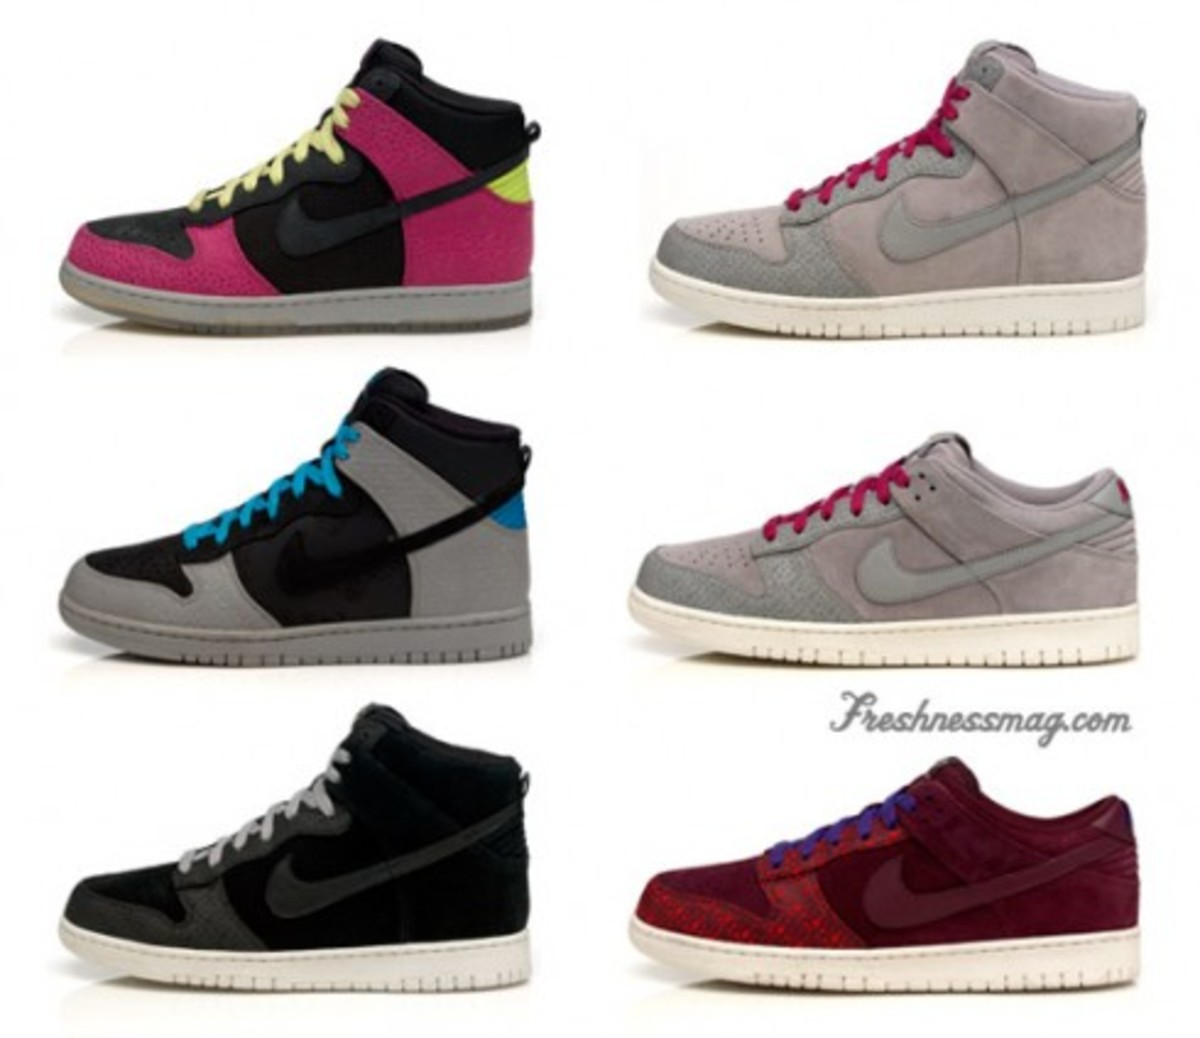 Nike Sportswear - Dunk Safari Pack - 0